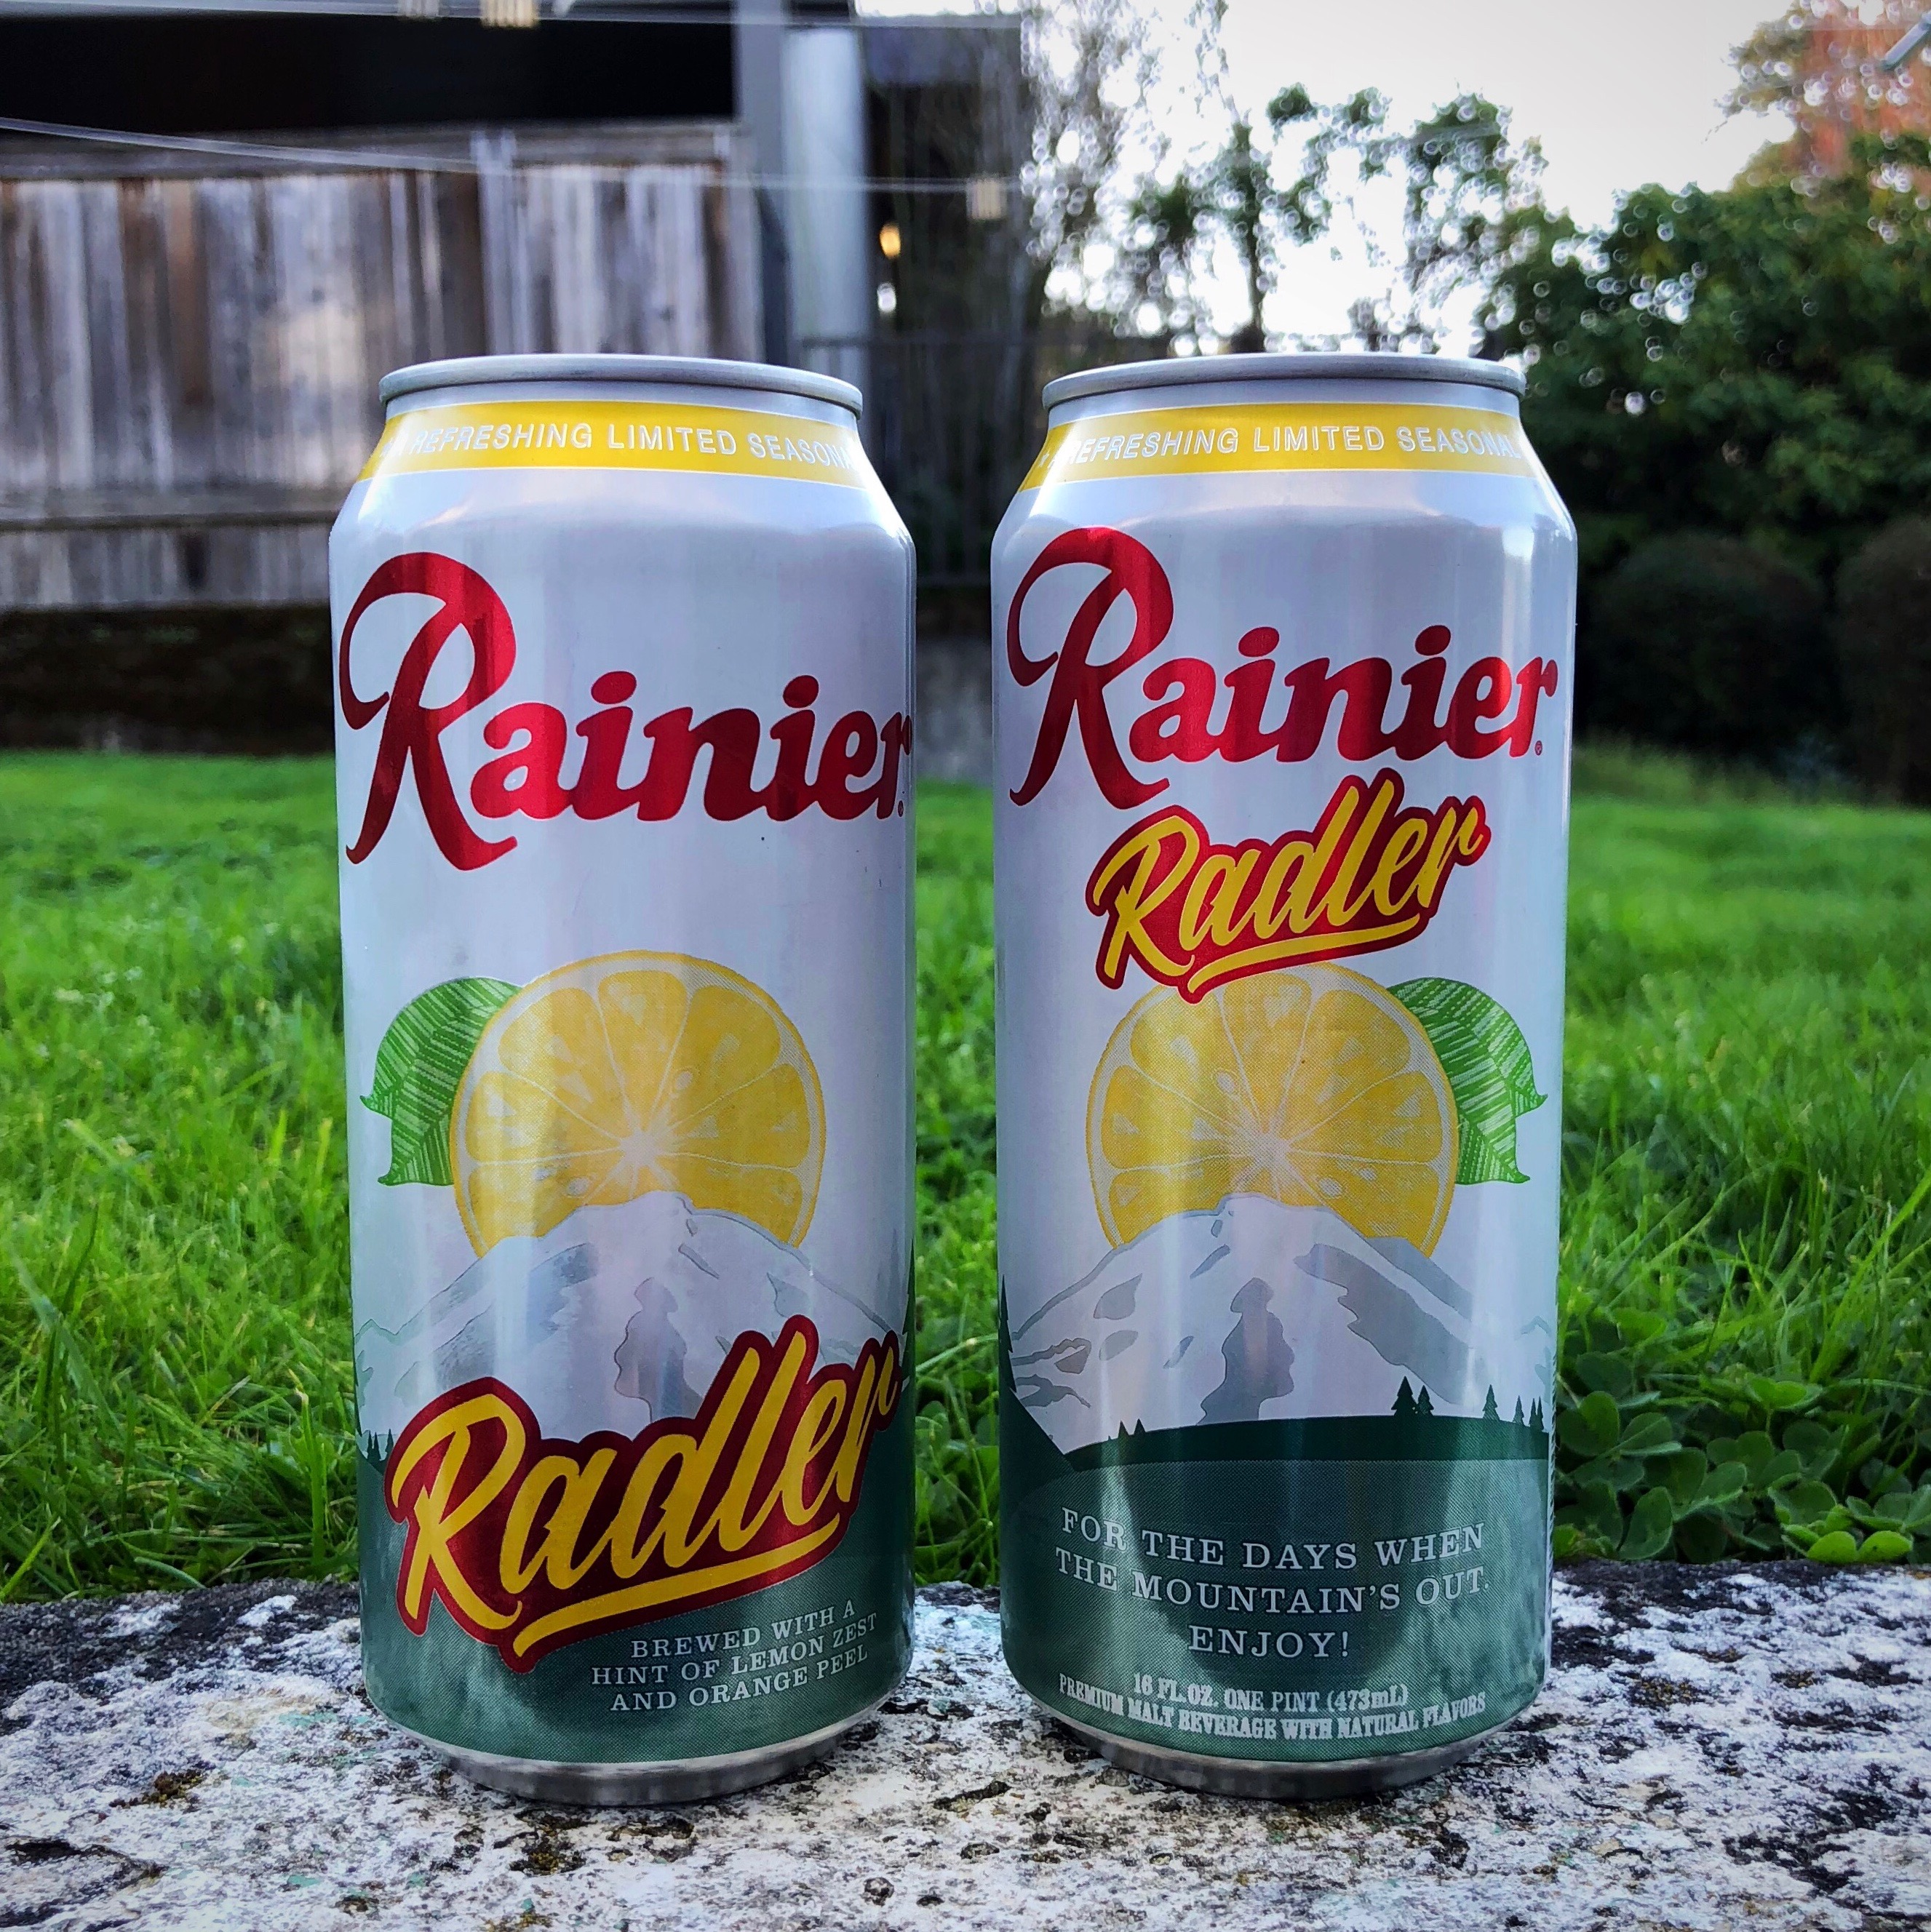 The label on the new Rainier Radler.